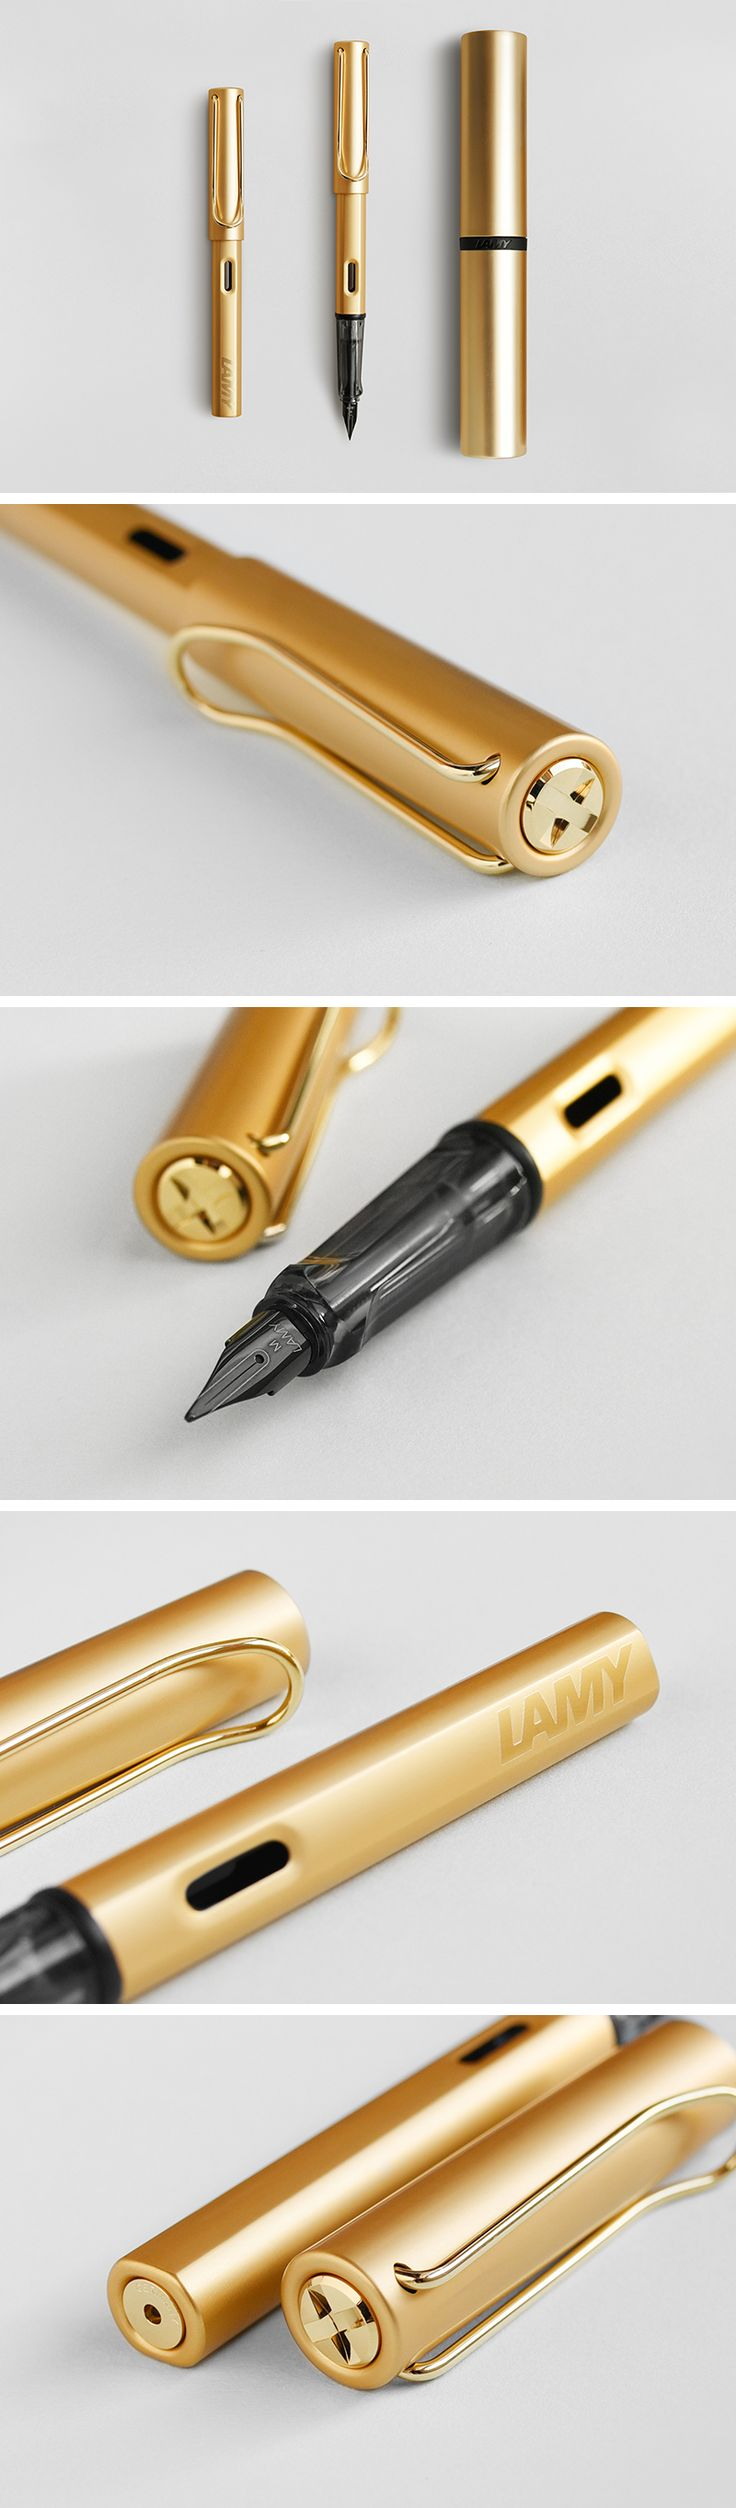 They're here! The LAMY Lx fountain pens have arrived! Find them in Palladium, Ruthenium, Rose Gold and Gold at NoteMaker.com.au